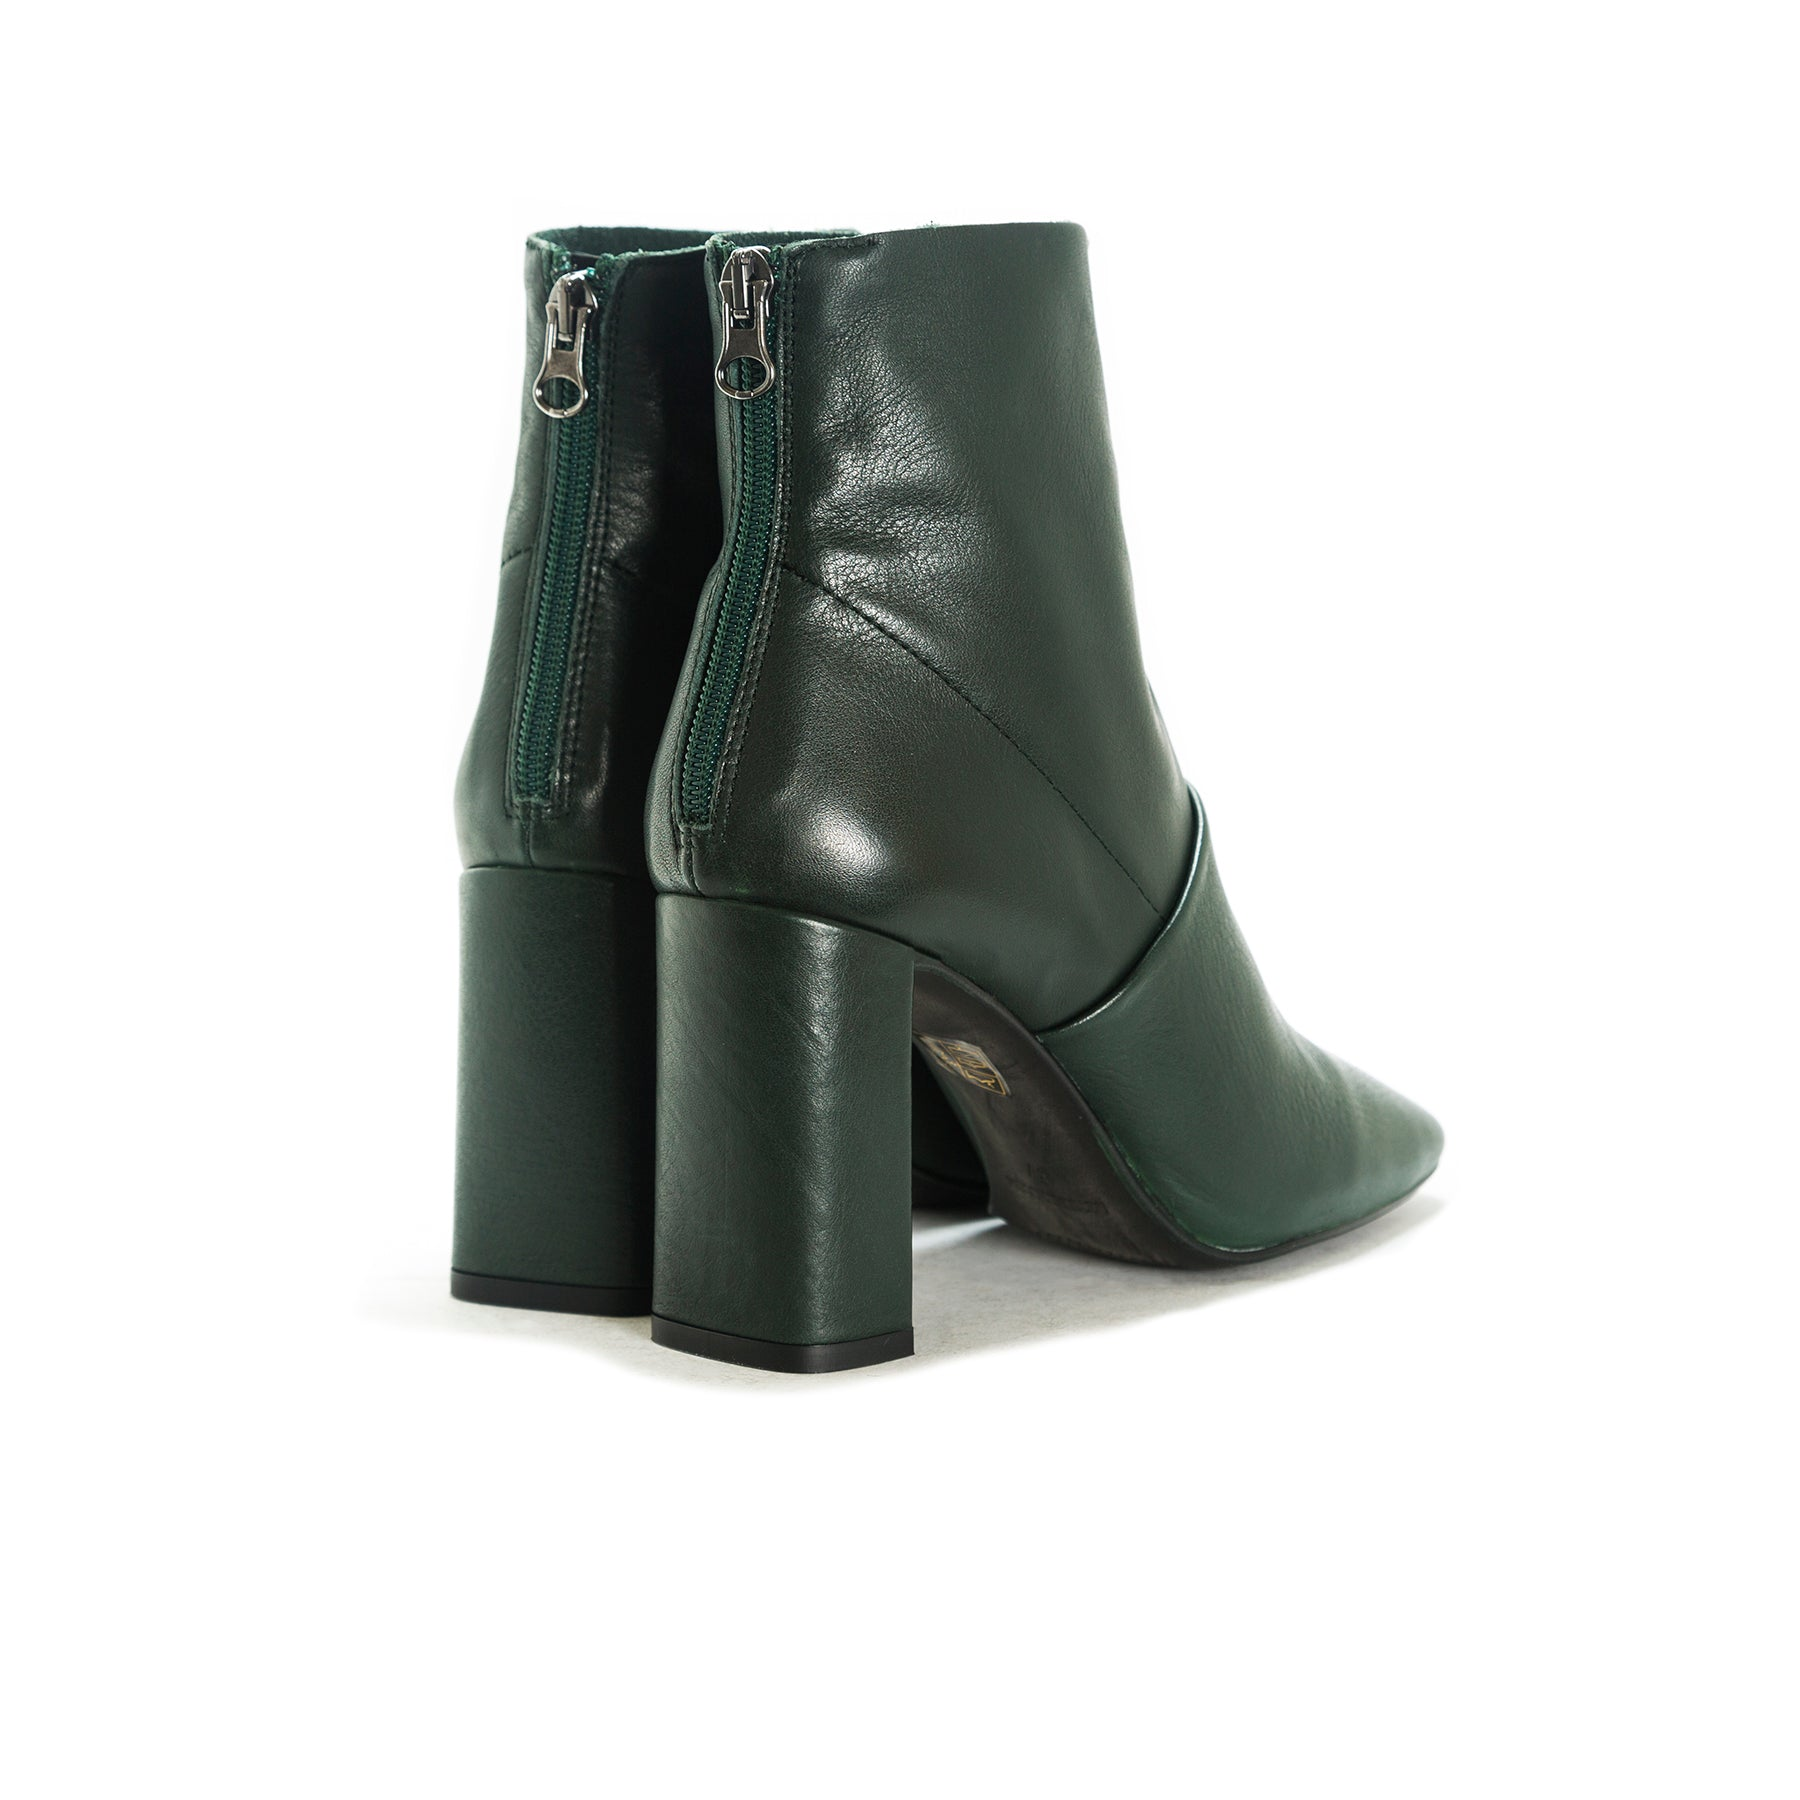 Devika Green Leather Boots